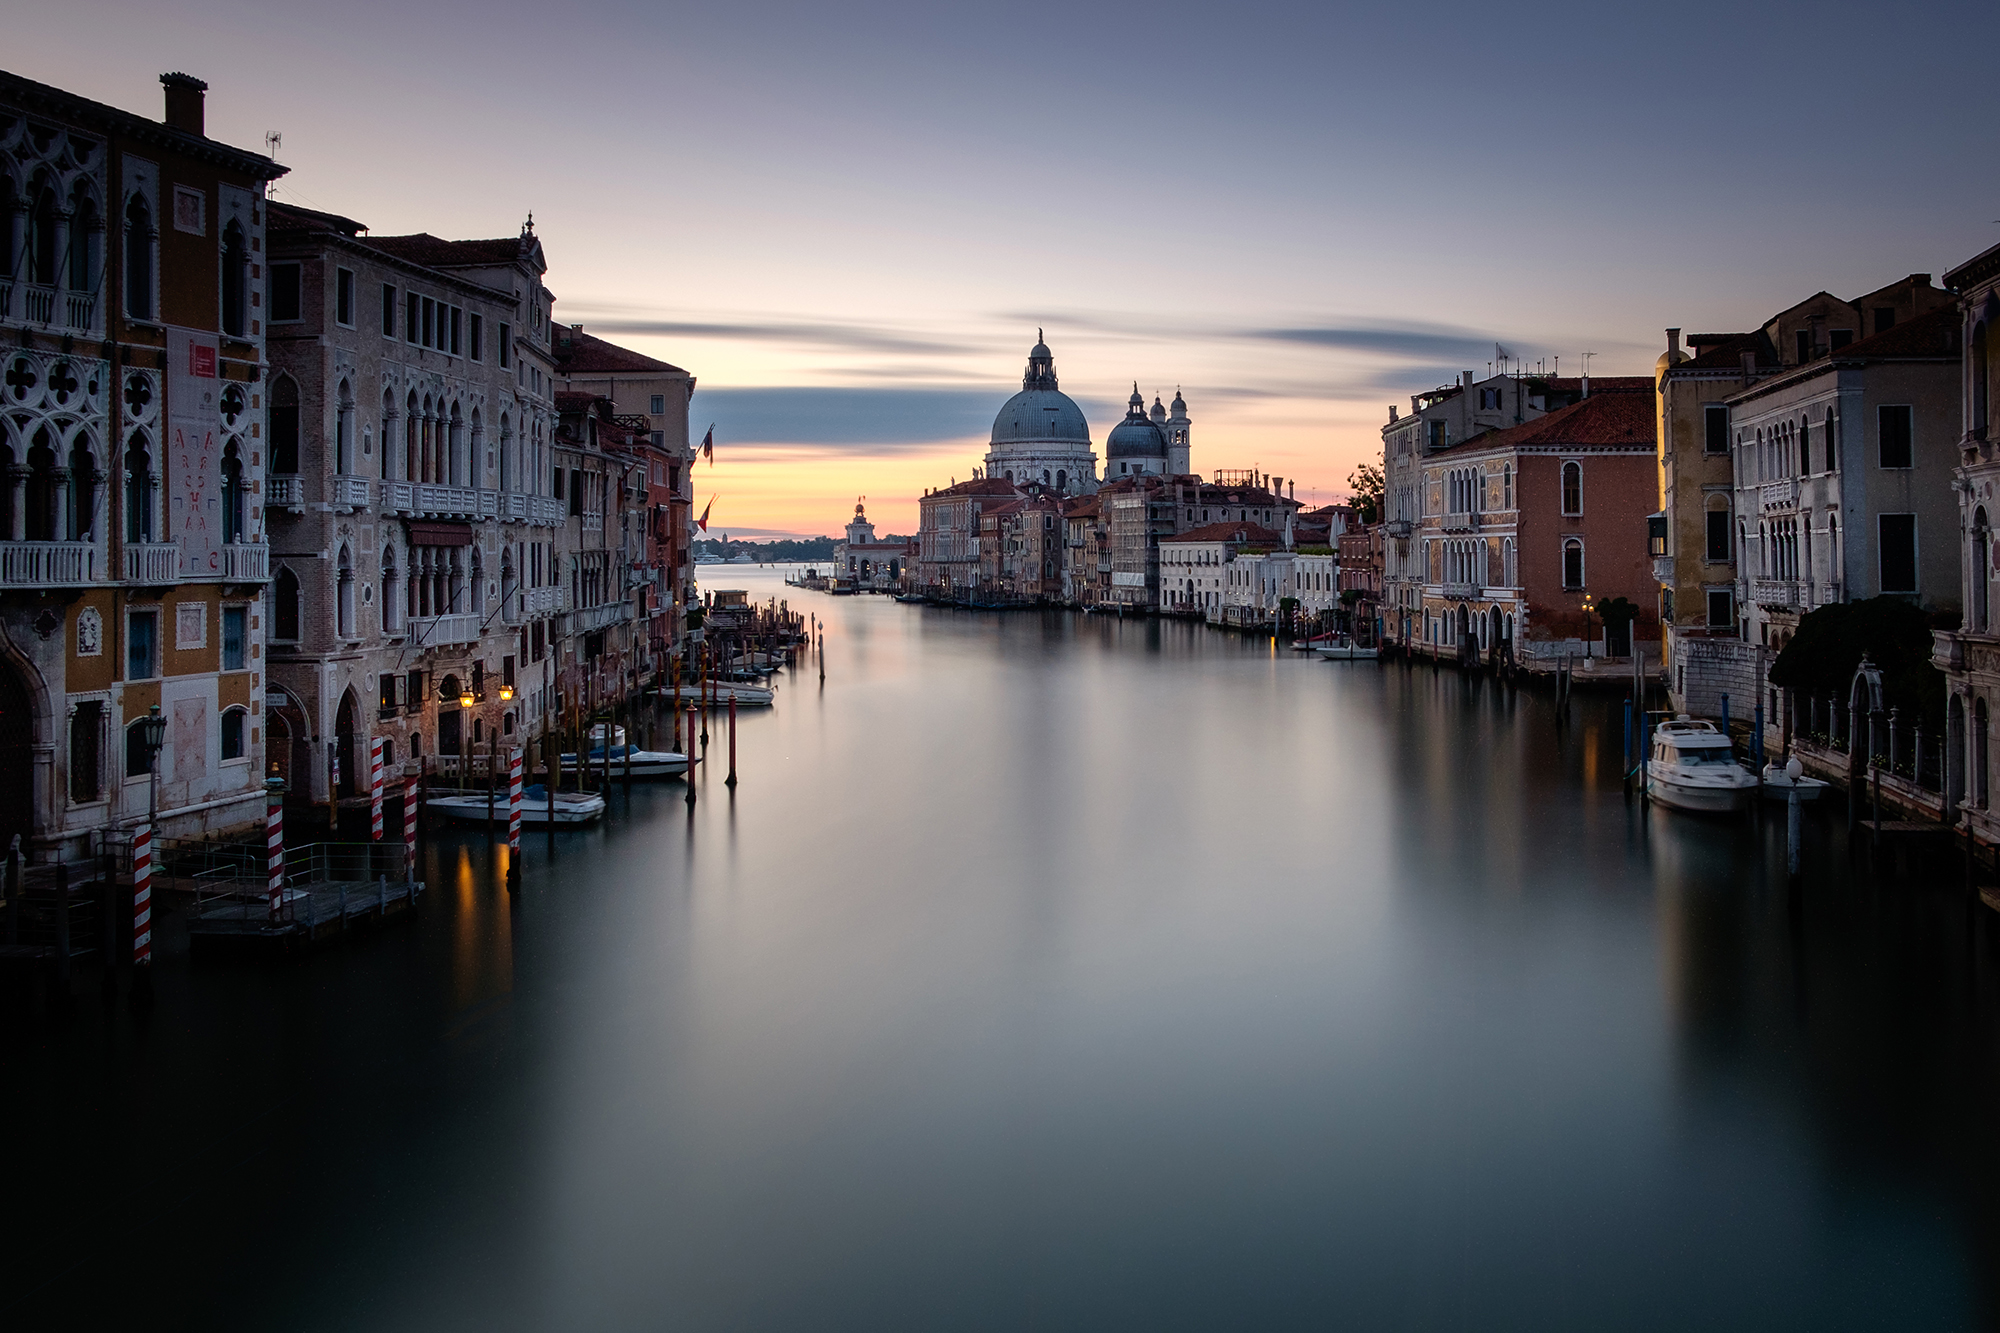 Sunrise at the Grand Canal in Venice taken by Trevor Sherwin